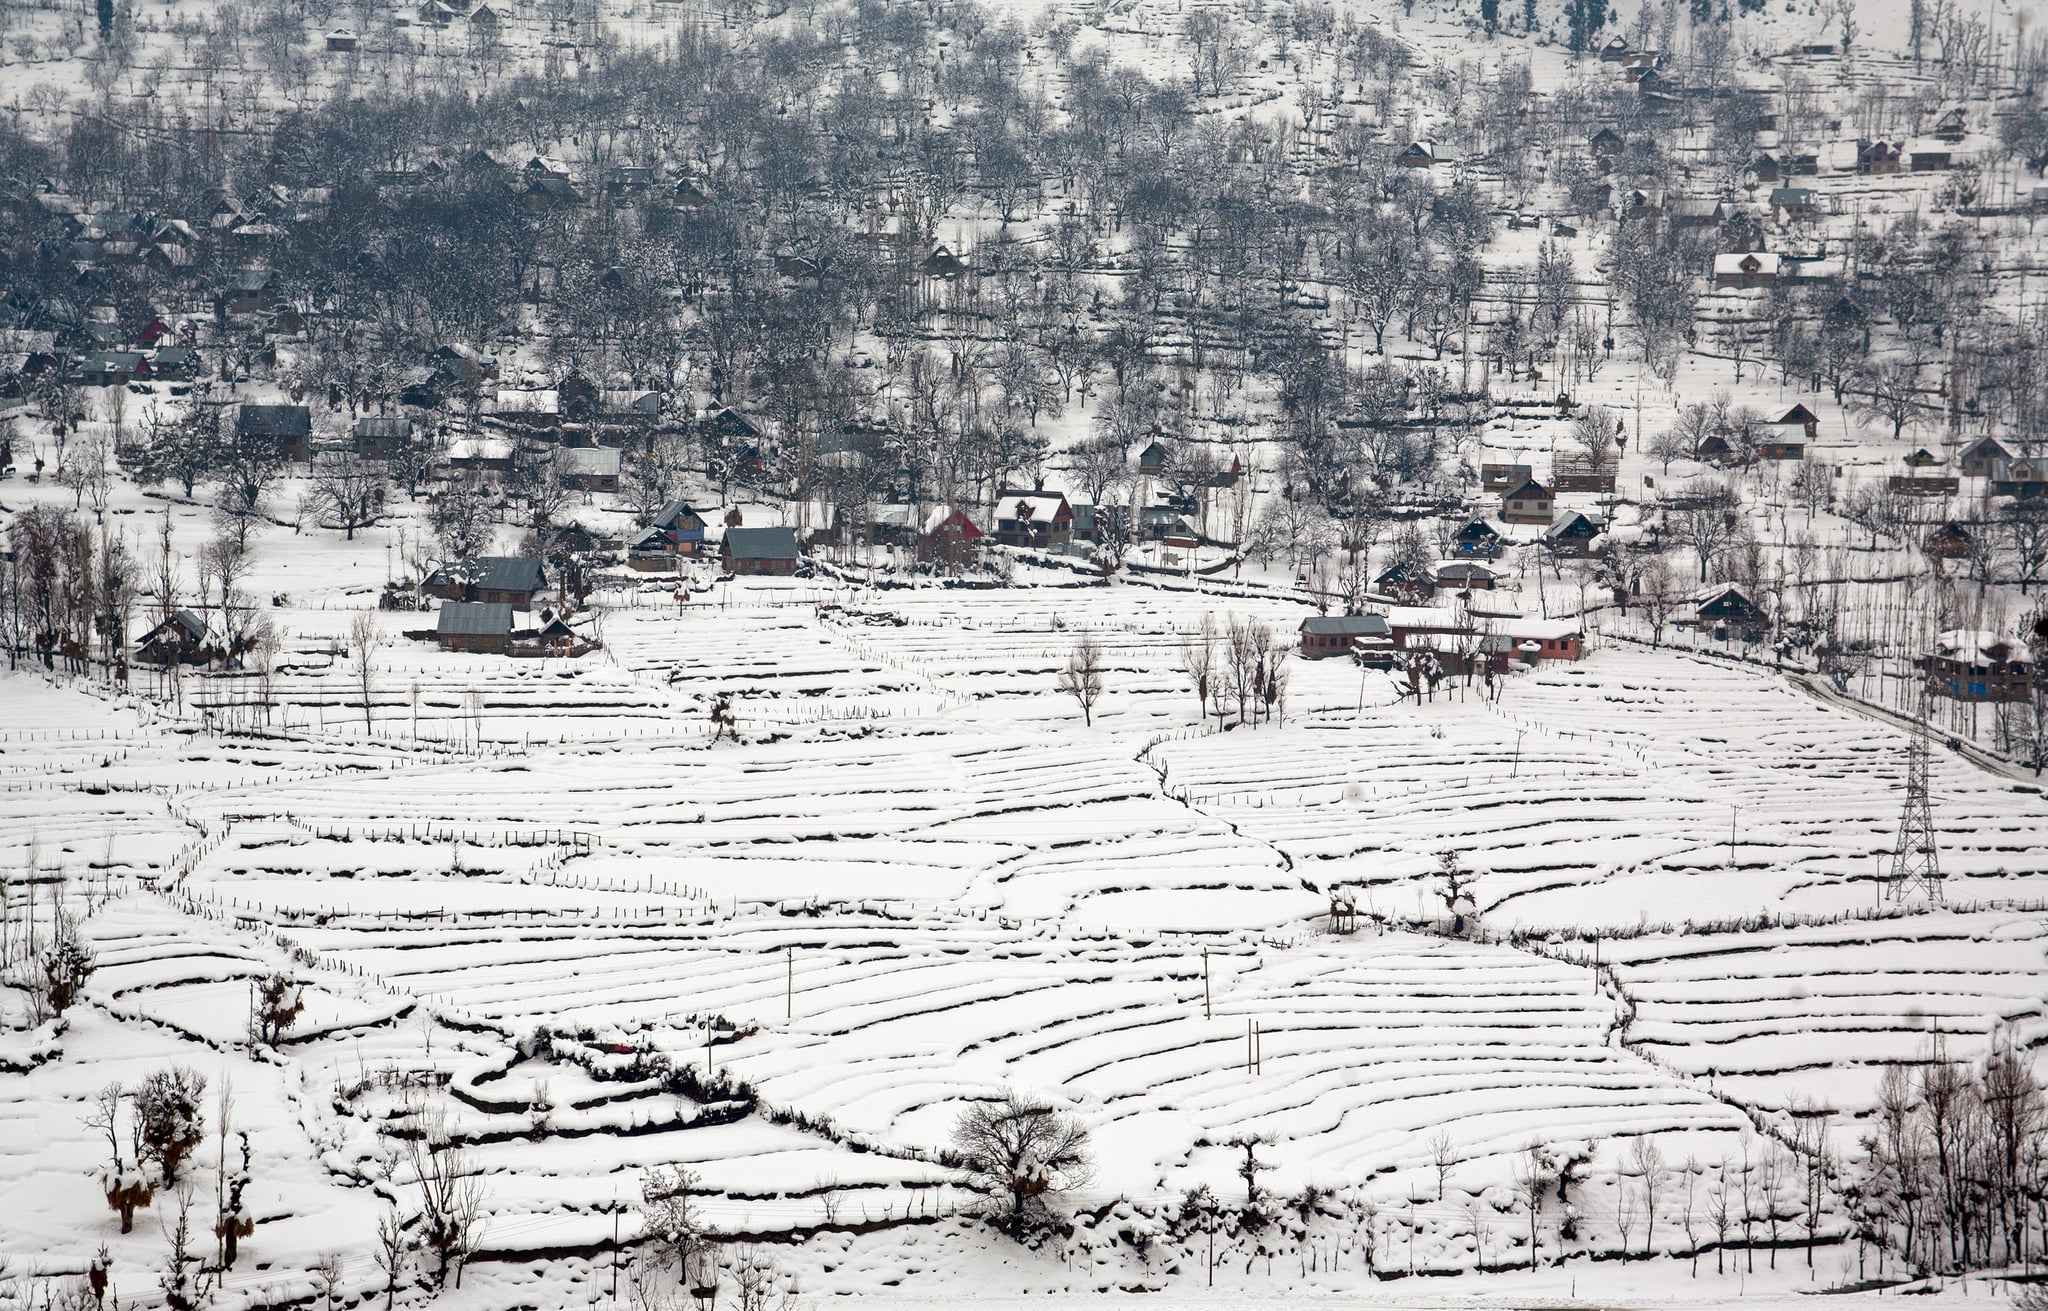 Snow blanketed the houses in Kashmir, India.